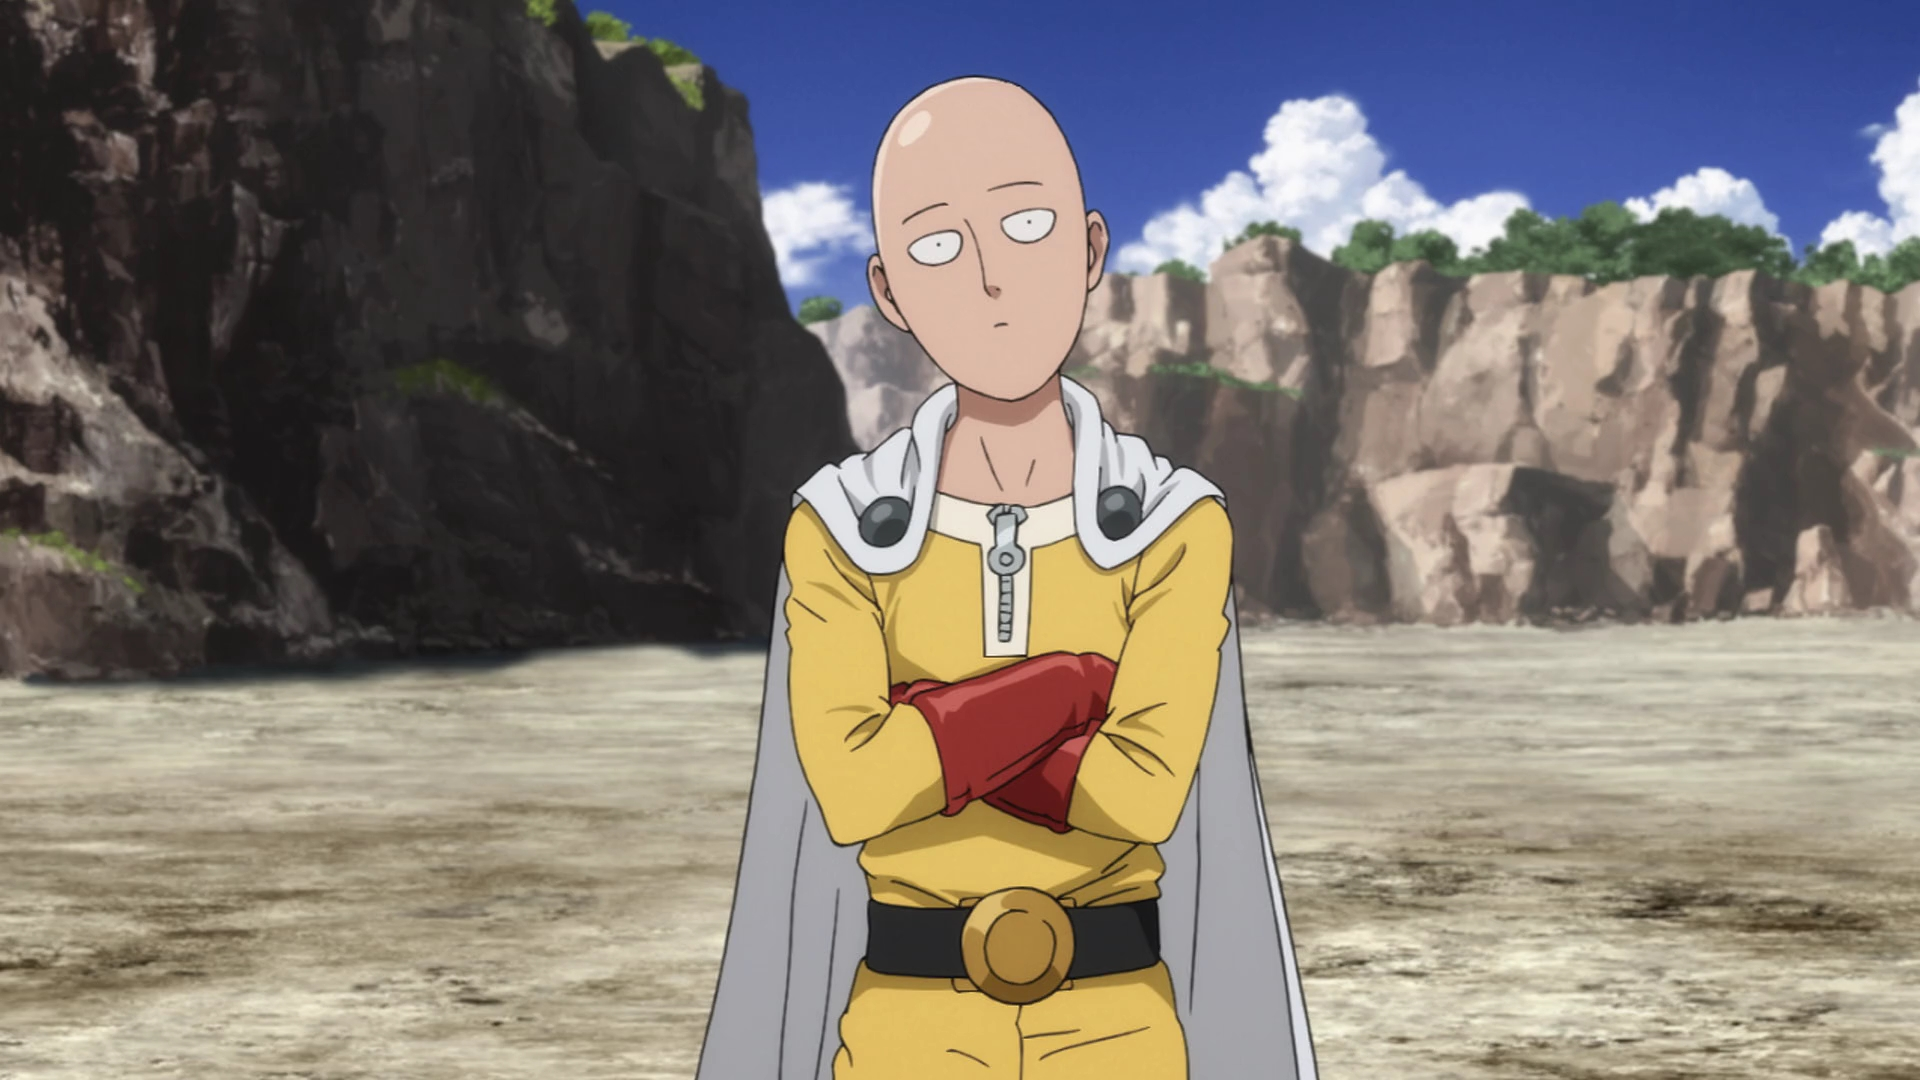 Reformed Theology The Upsidedown Heroism of 'One Punch Man  Calvinism